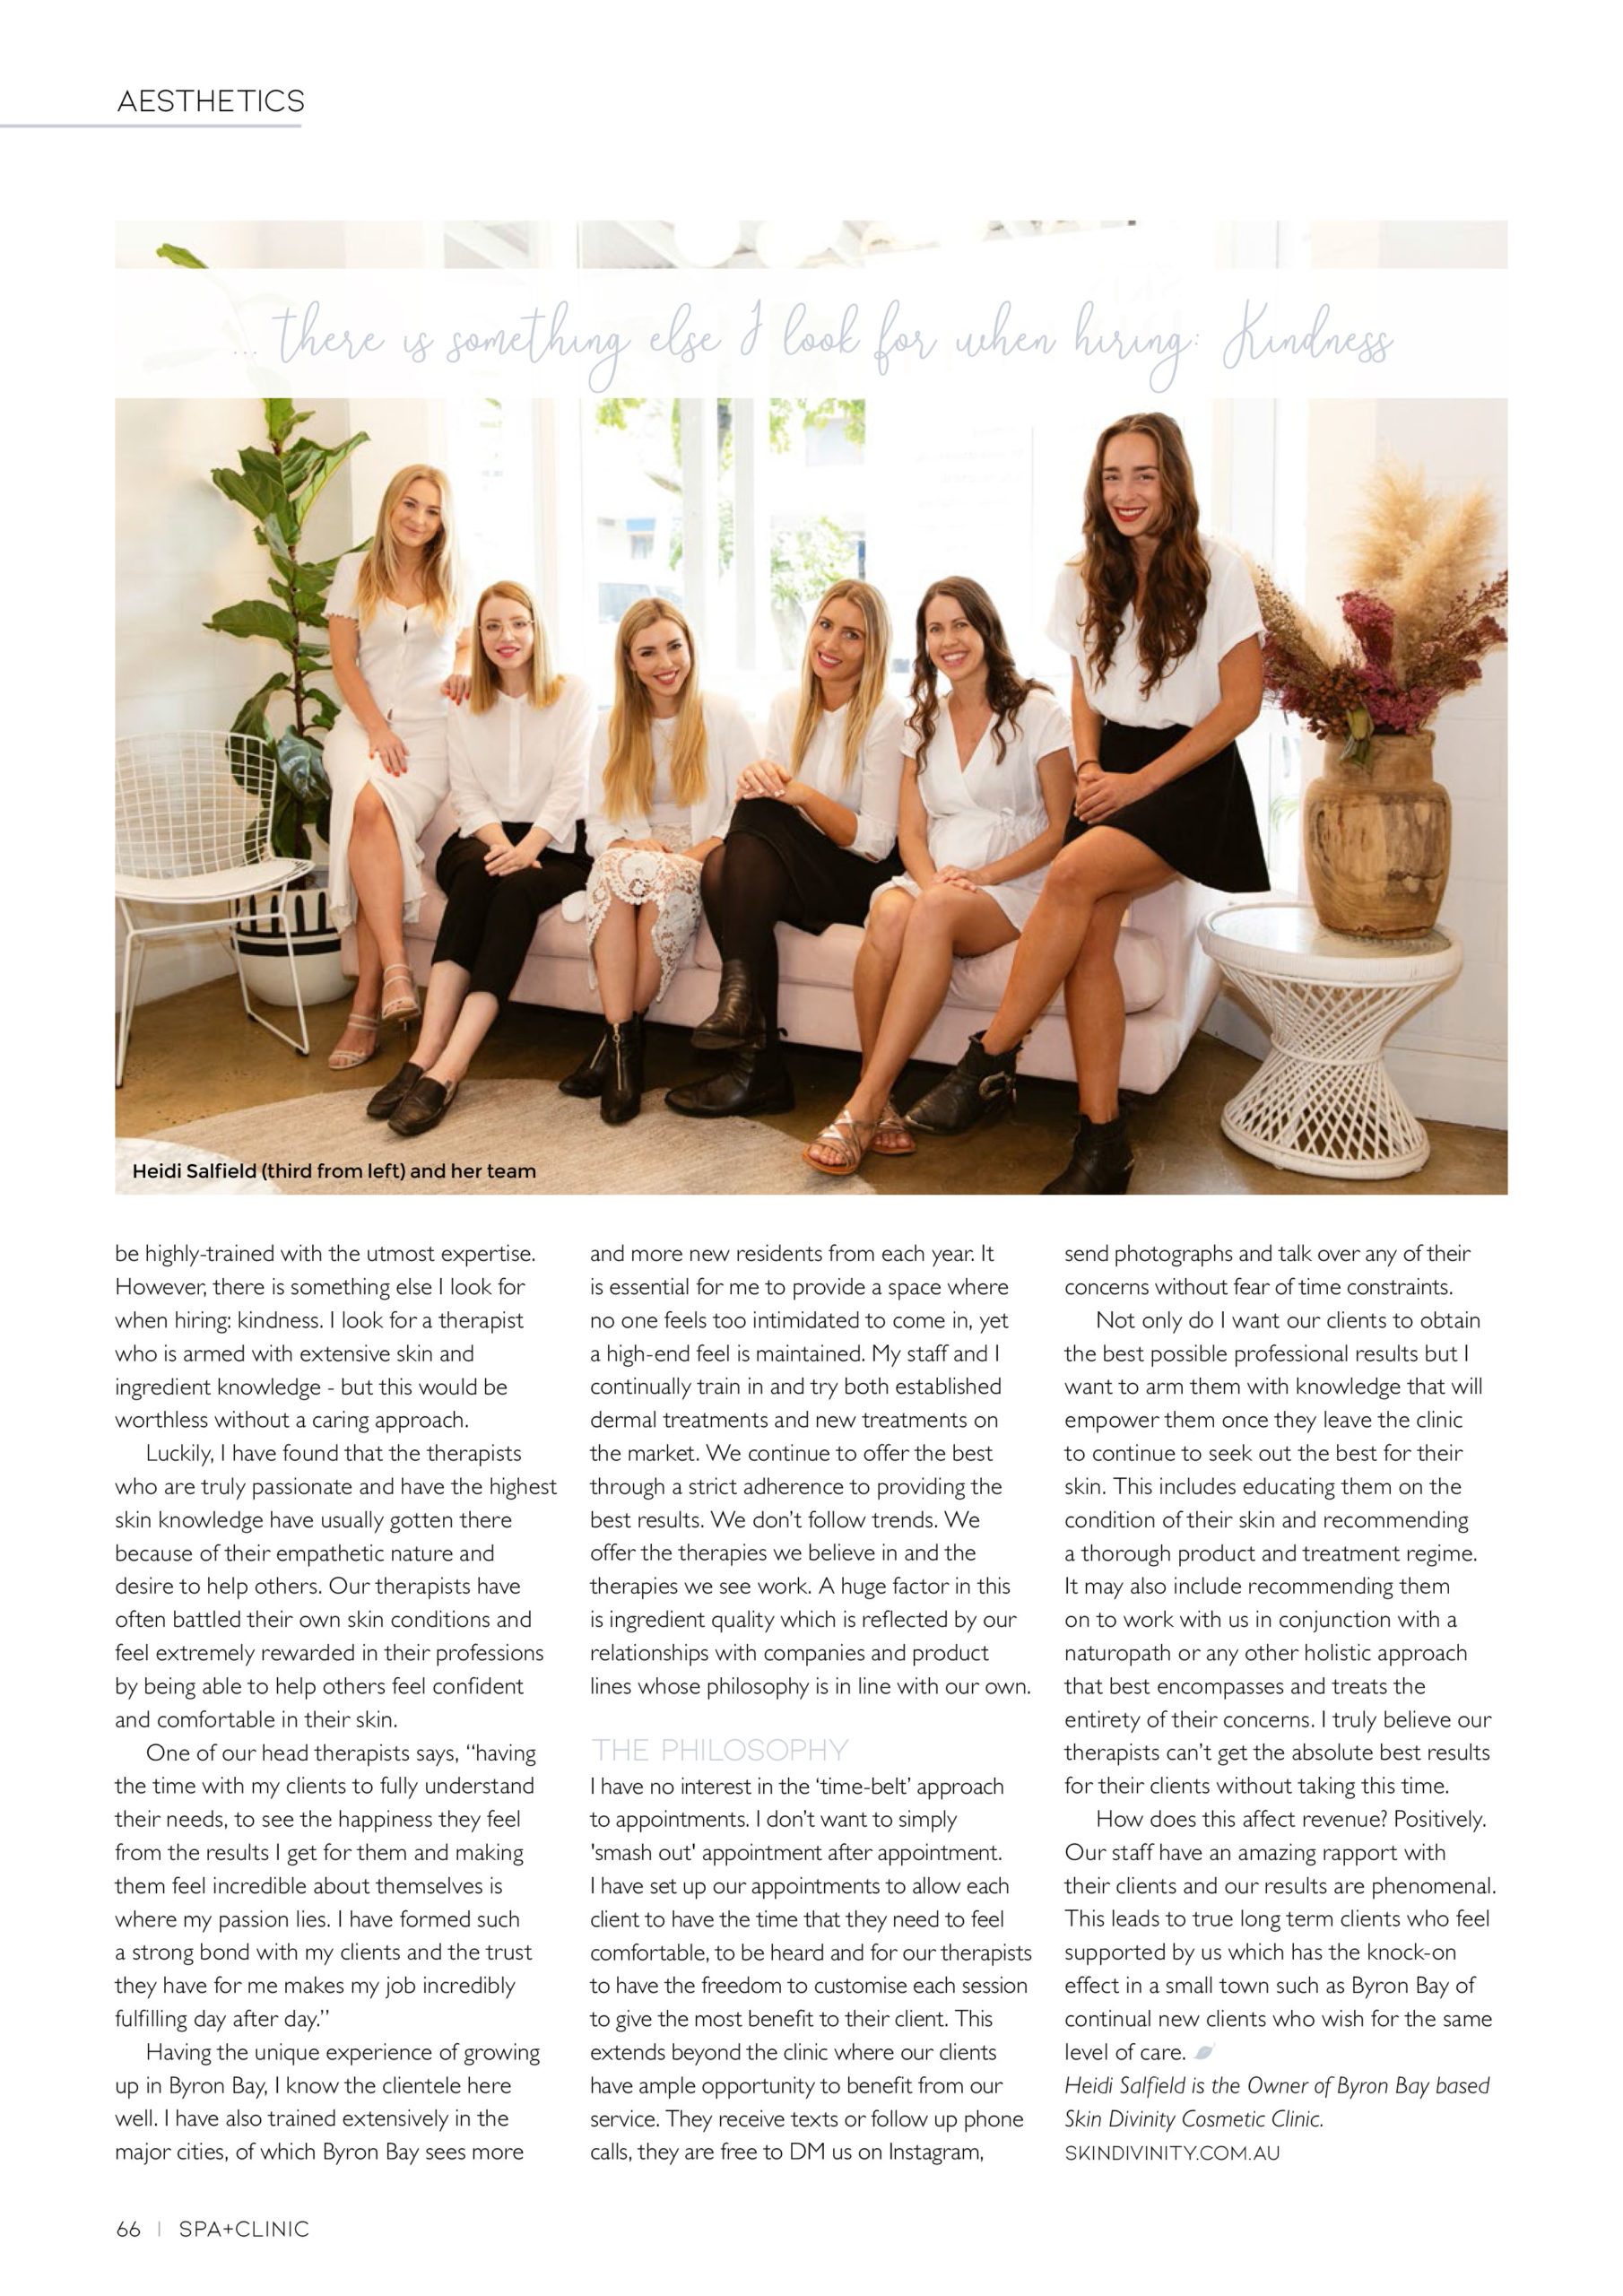 Article on Skin Divinity Cosmetic Clinic Spa+Clinic 2 - QLD, NSW